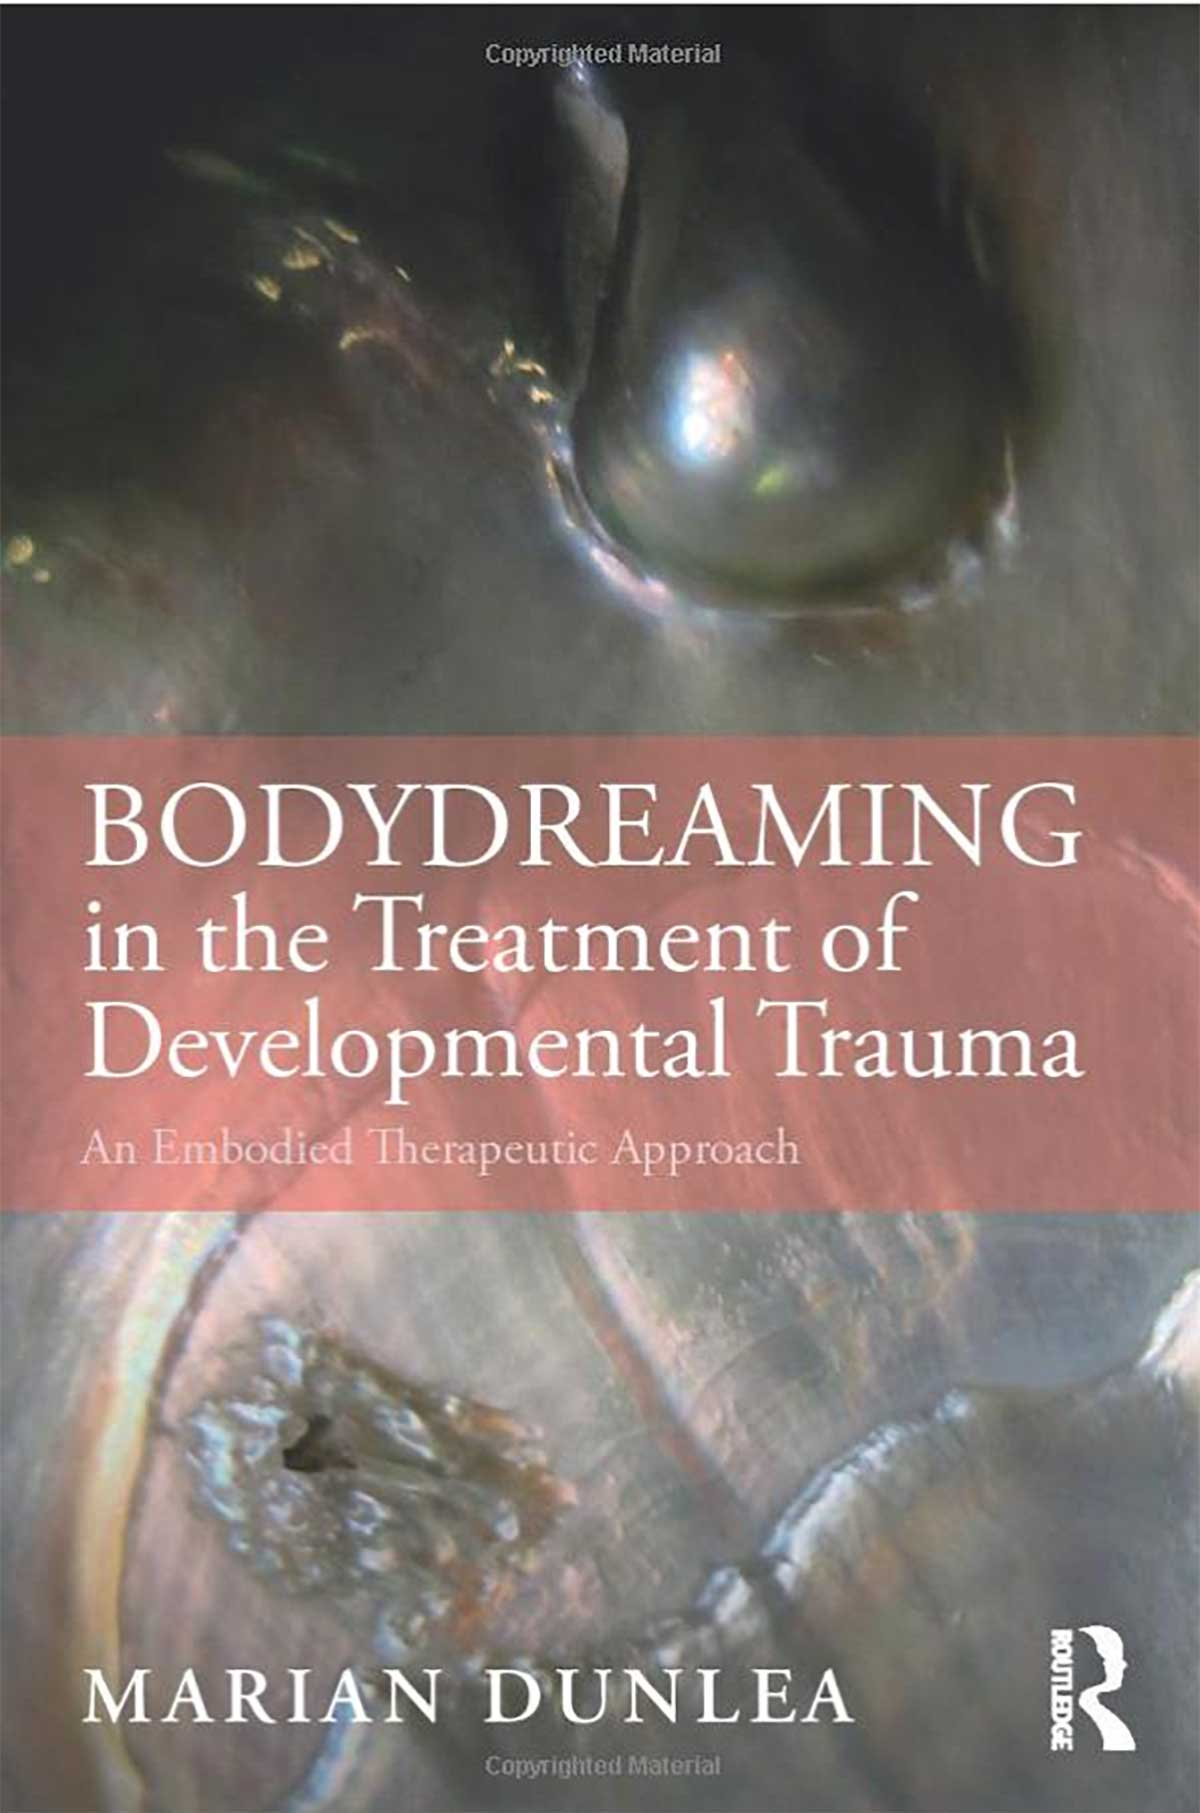 BodyDreaming in the Treatment of Developmental Trauma